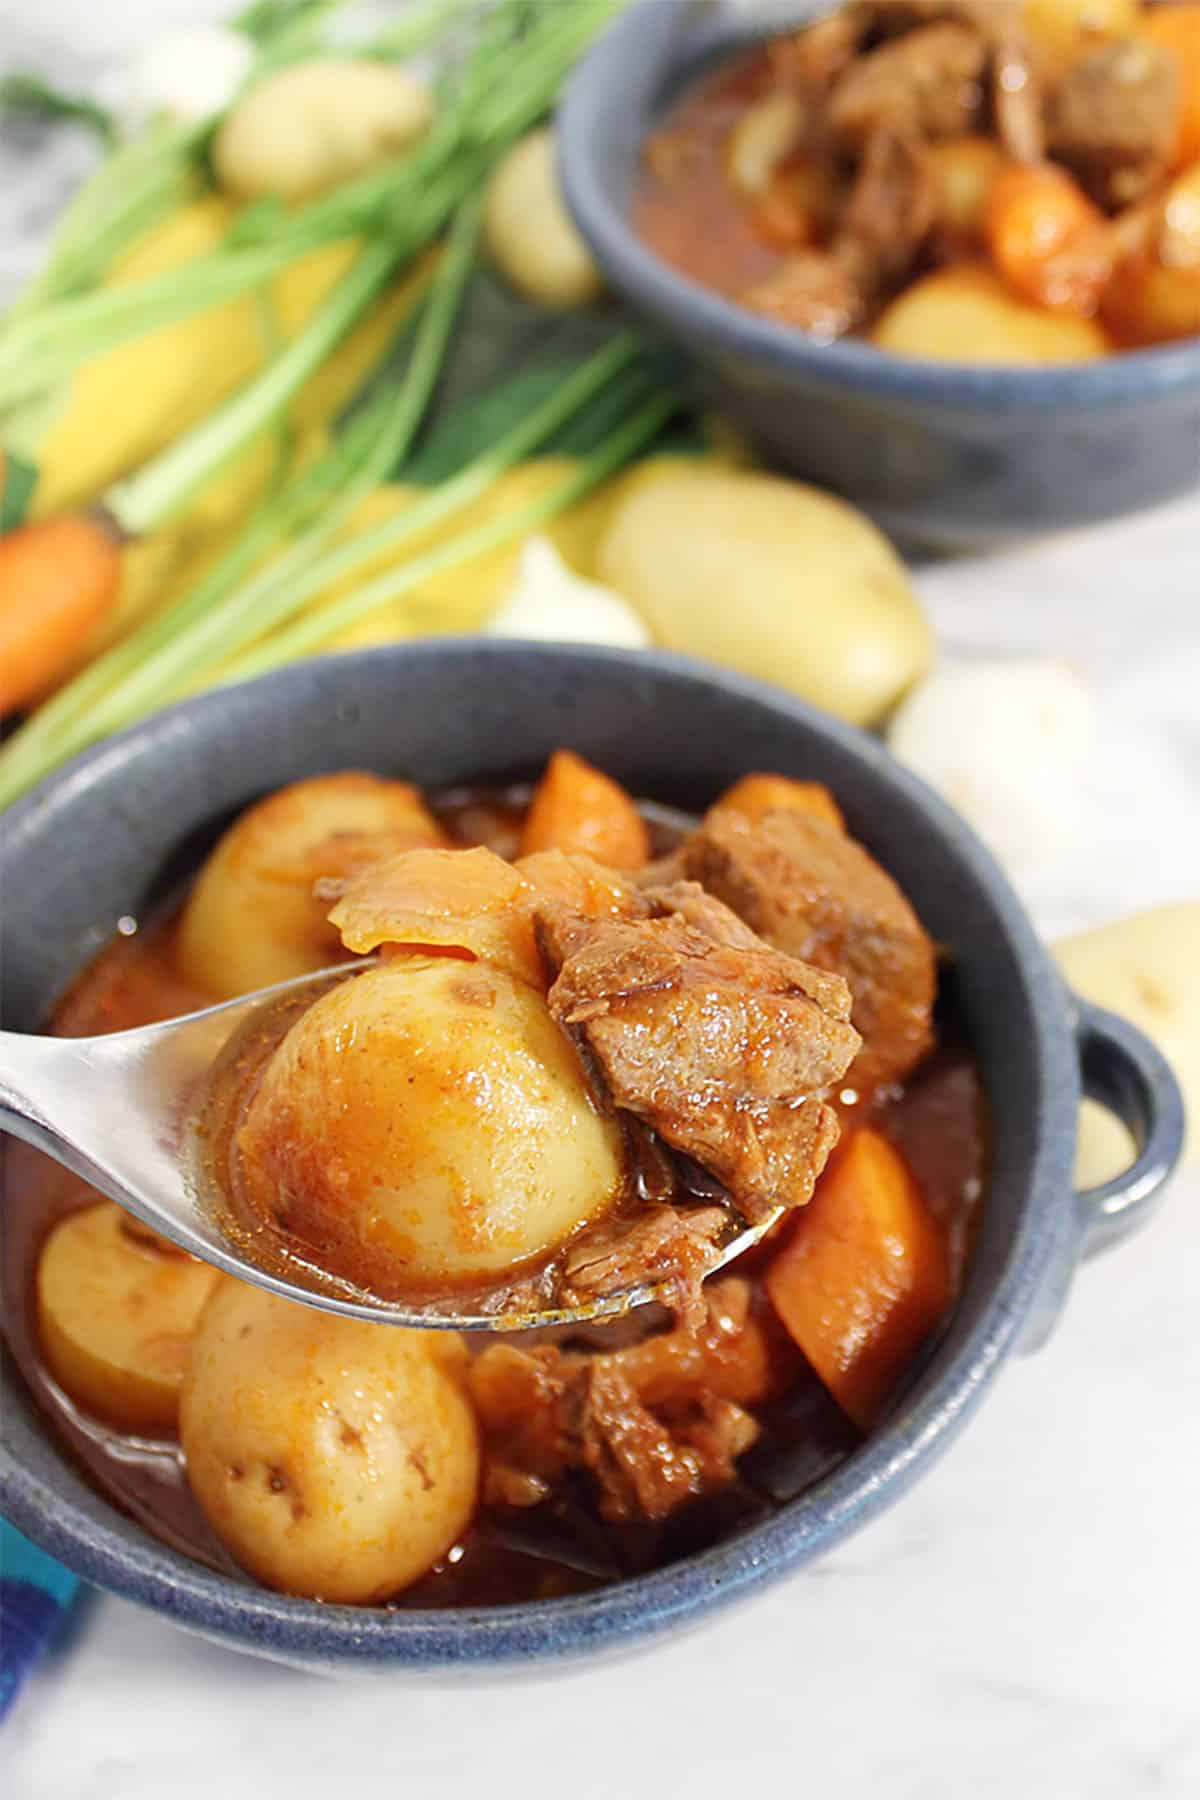 Spoonful of beef stew over serving.